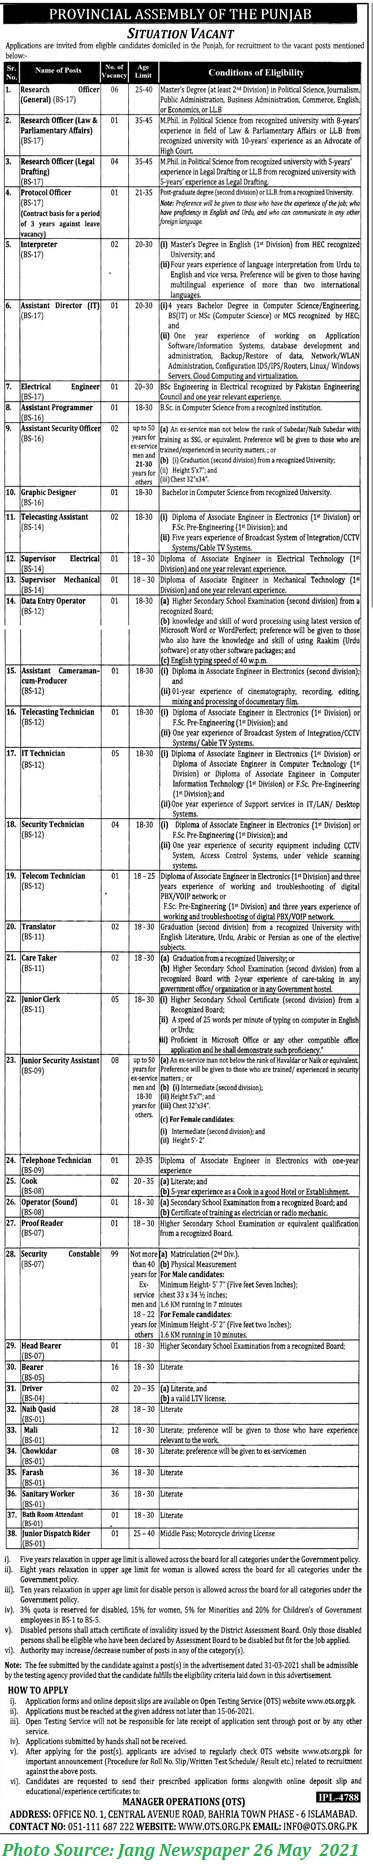 Provincial Assembly Punjab Jobs 2021 Download Application Forms 205+ Posts